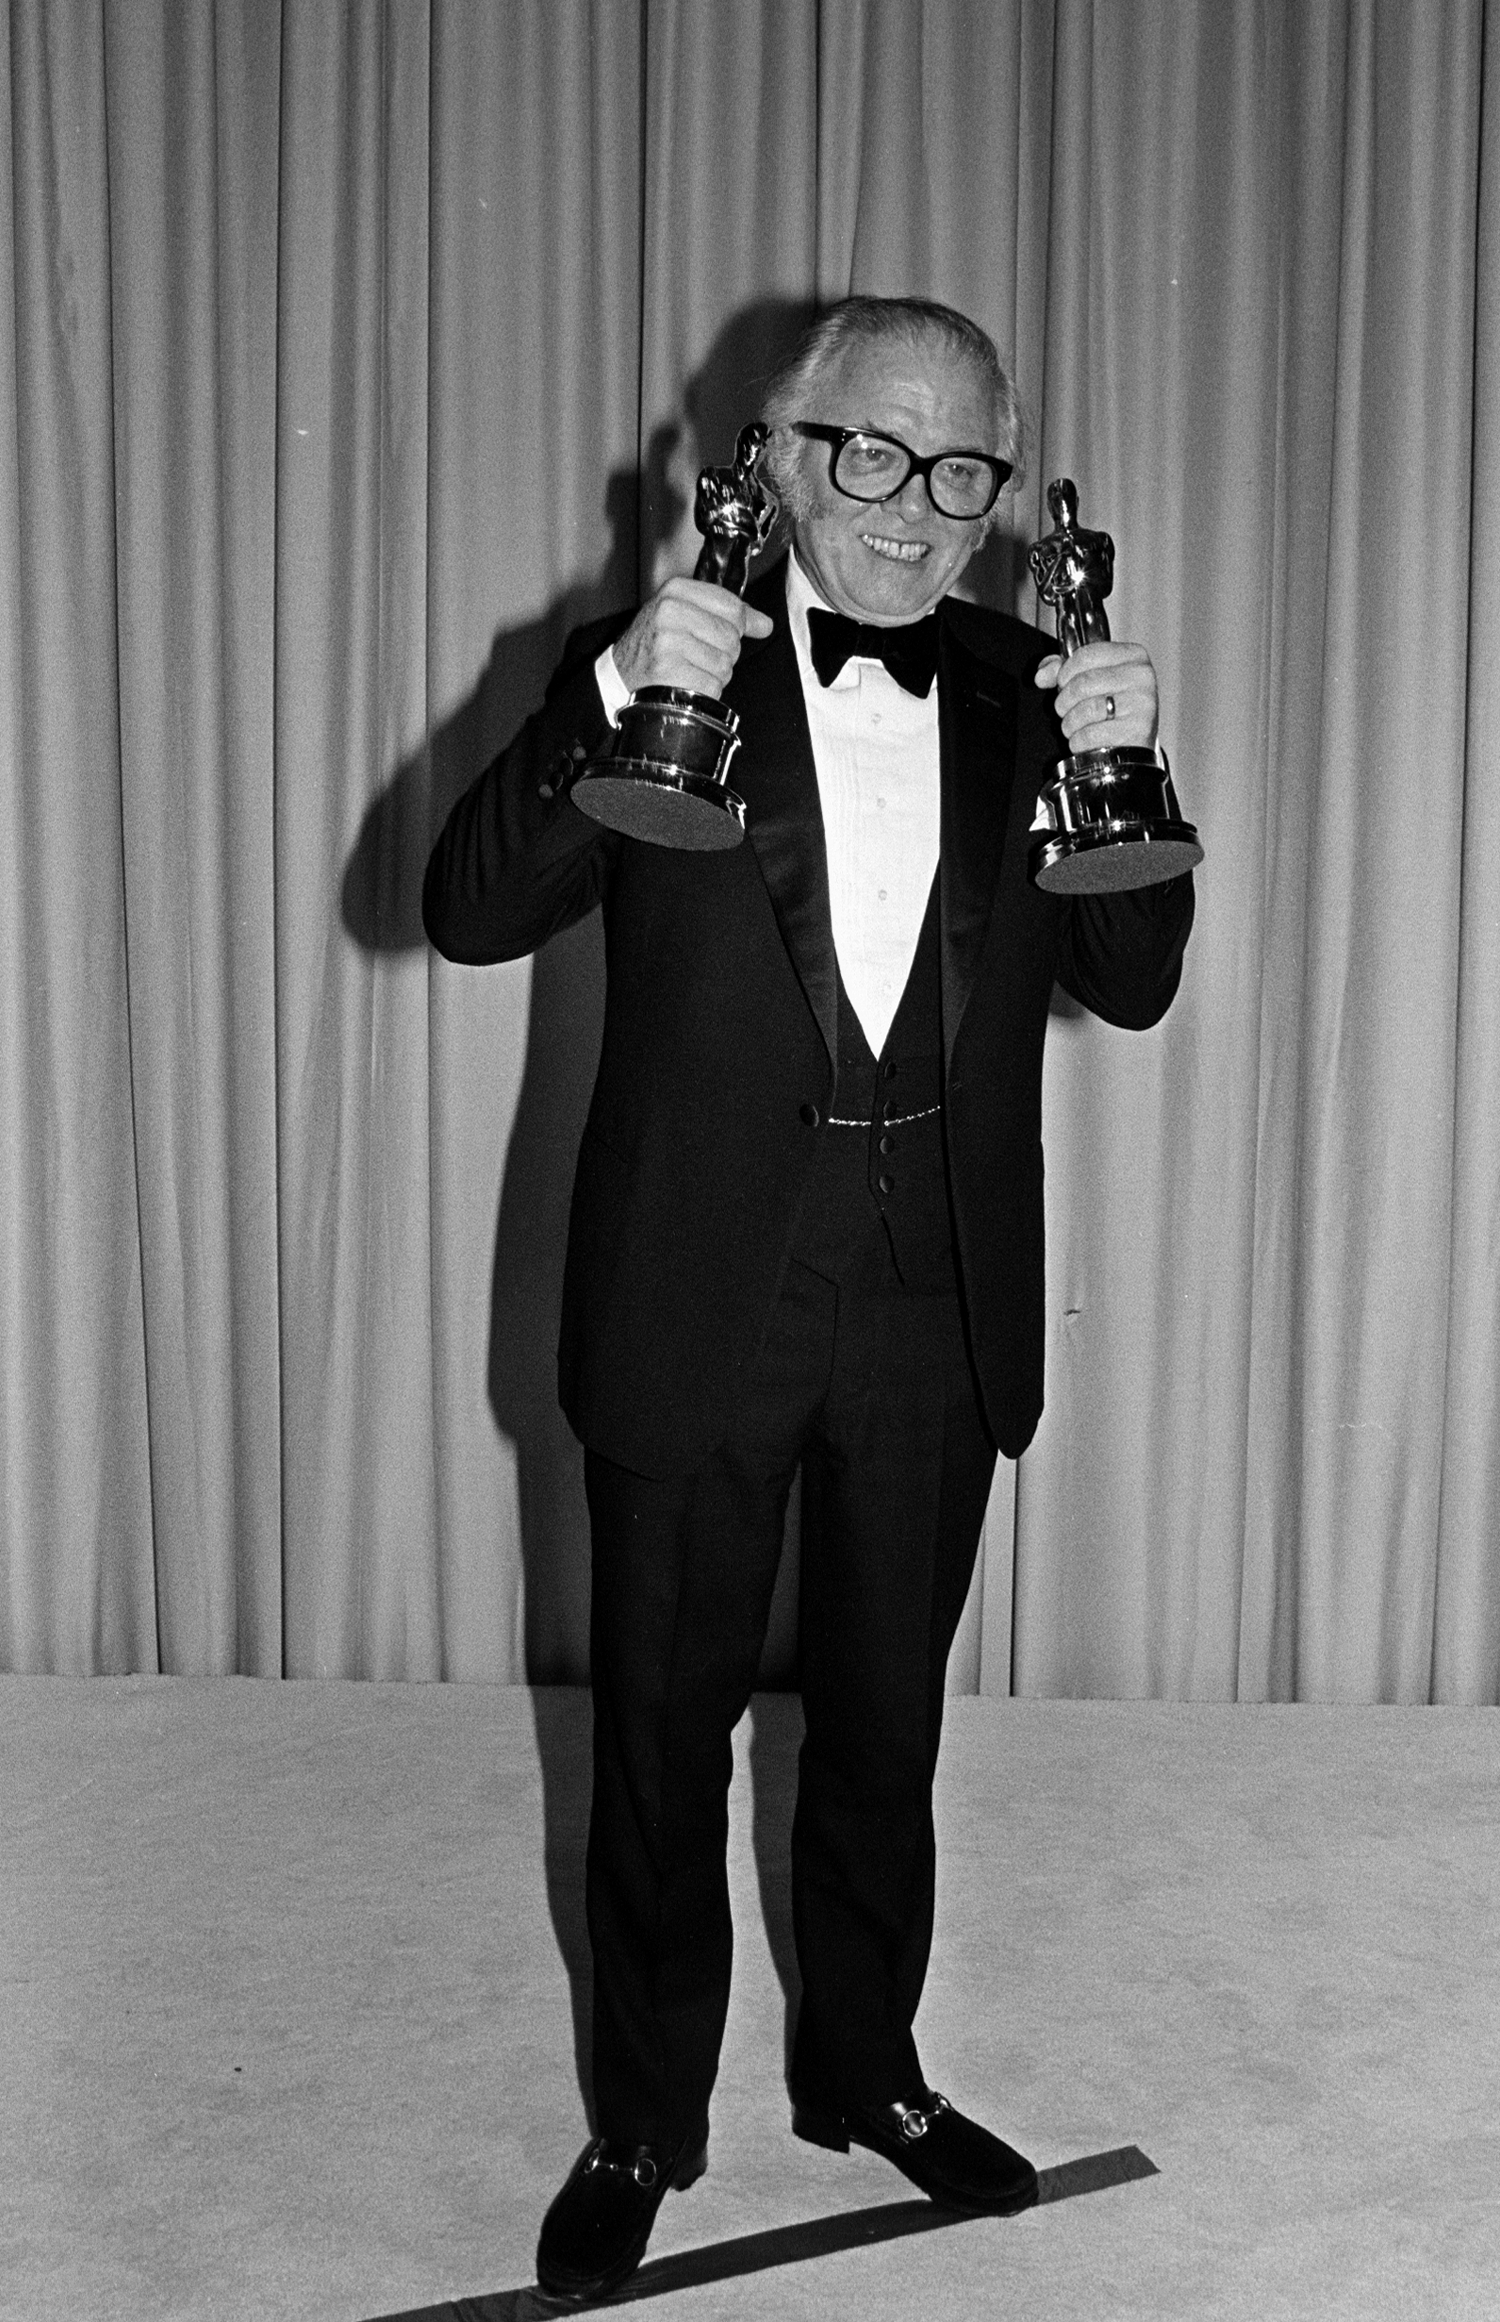 Richard Attenborough's 1982 biopic Gandhi would net him Oscars for both Best Picture and Best Director.